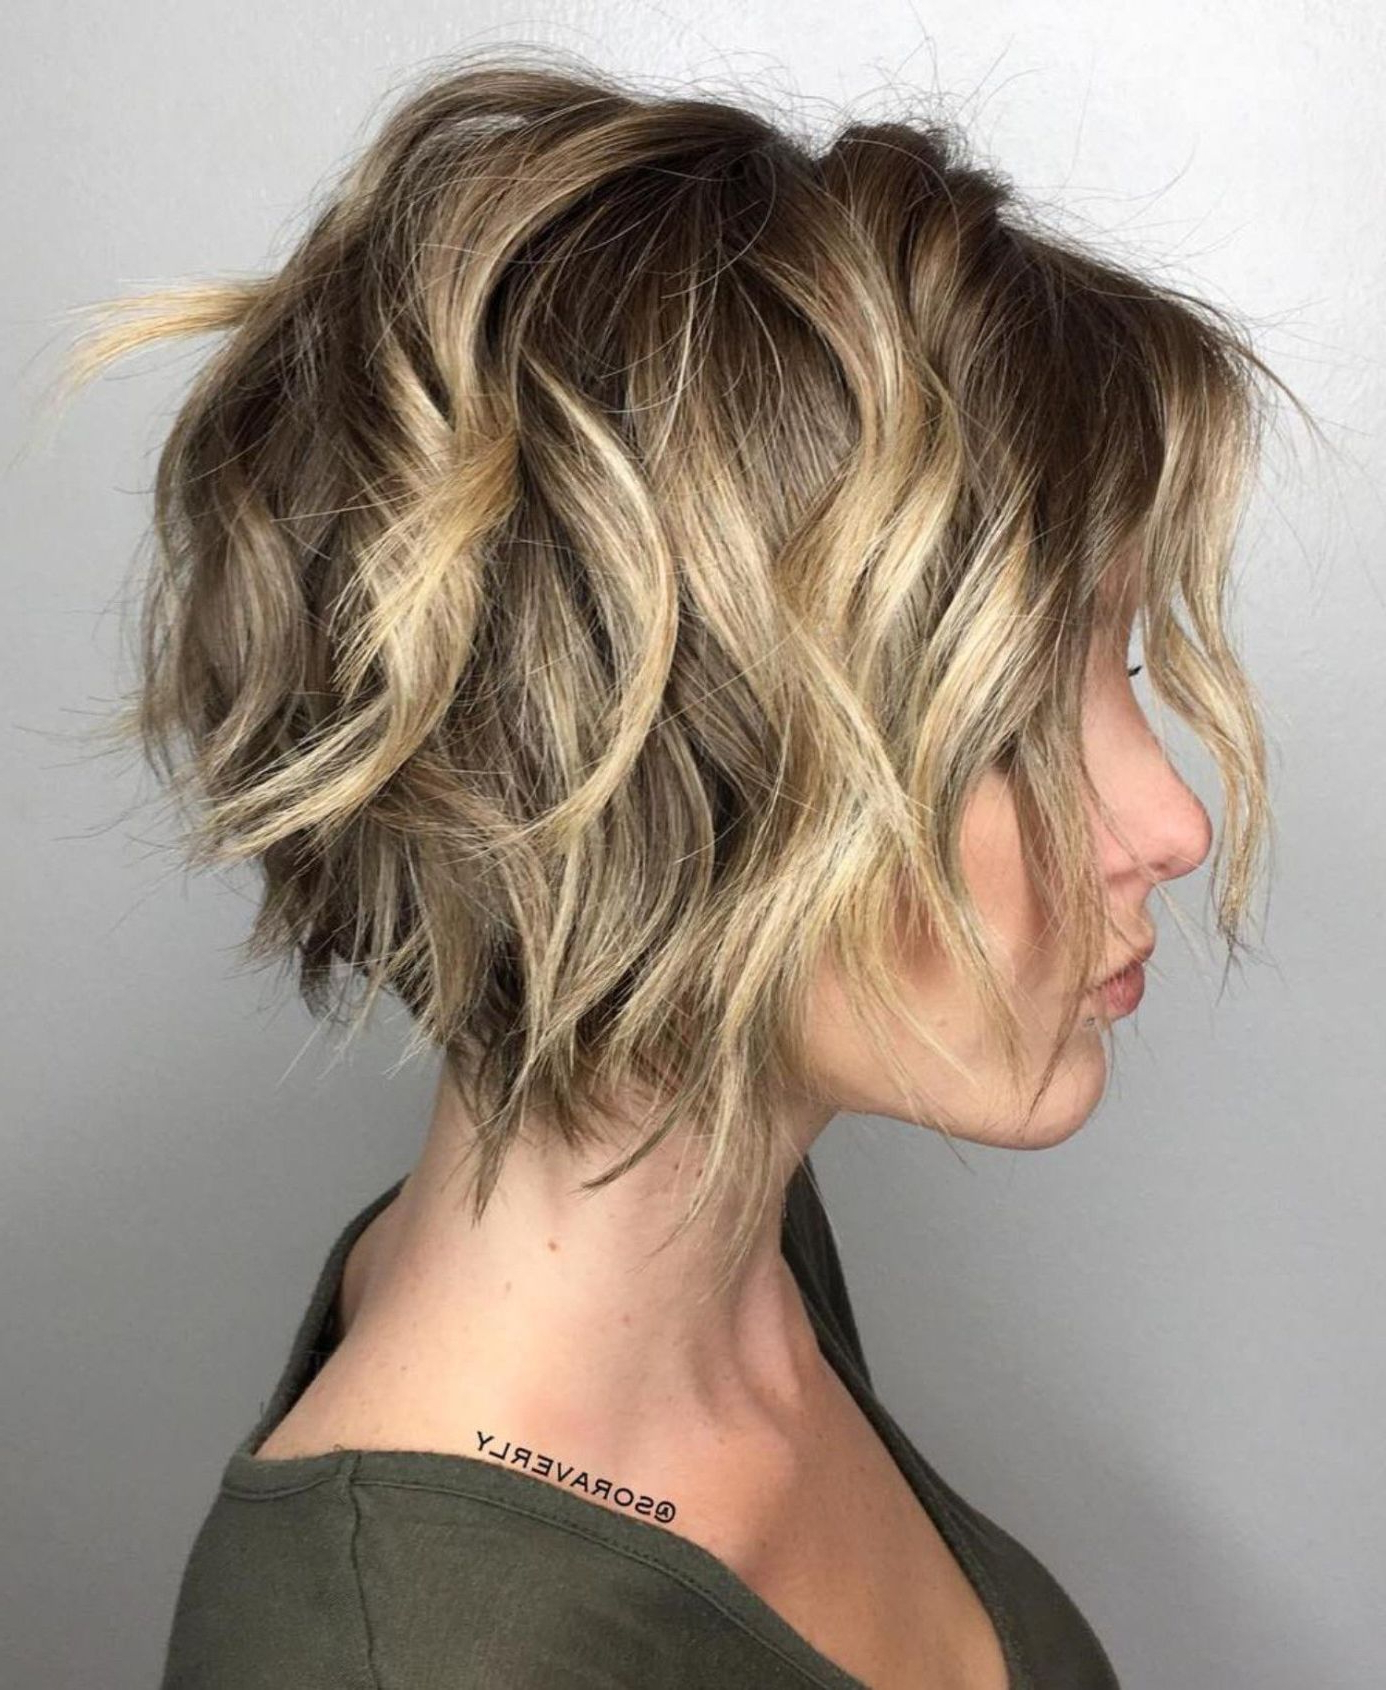 100 Mind Blowing Short Hairstyles For Fine Hair In 2018   Oh I'm In Nape Length Wavy Ash Brown Bob Hairstyles (View 23 of 25)